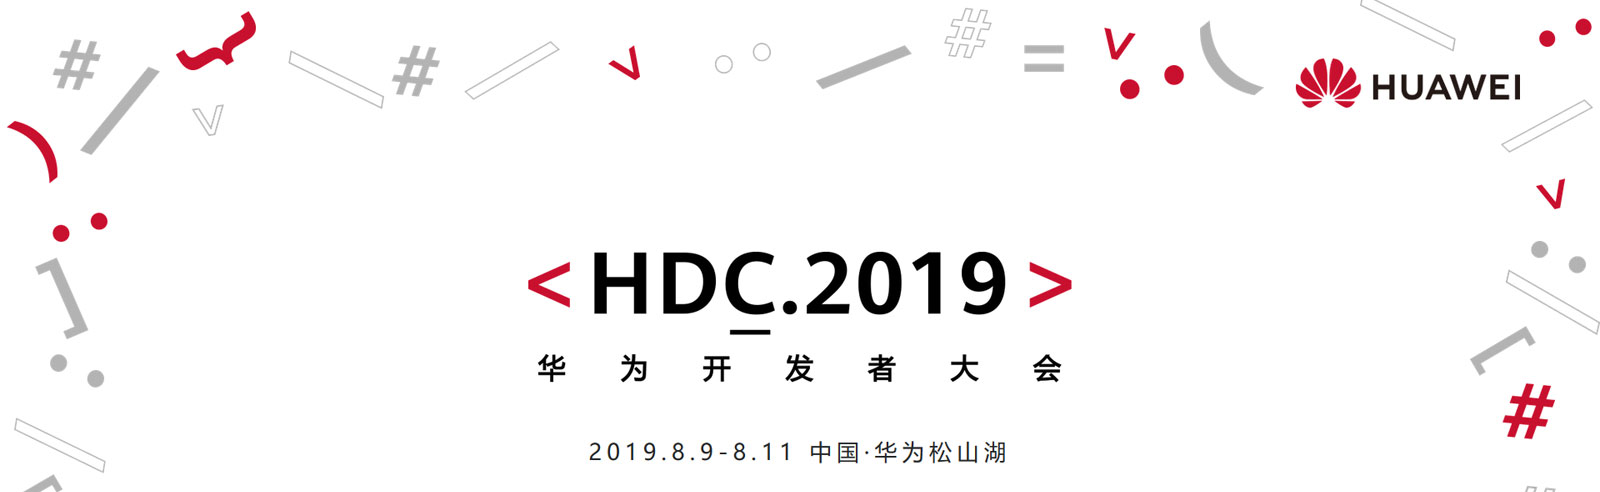 Huawei Developers Conference scheduled for August 9-11